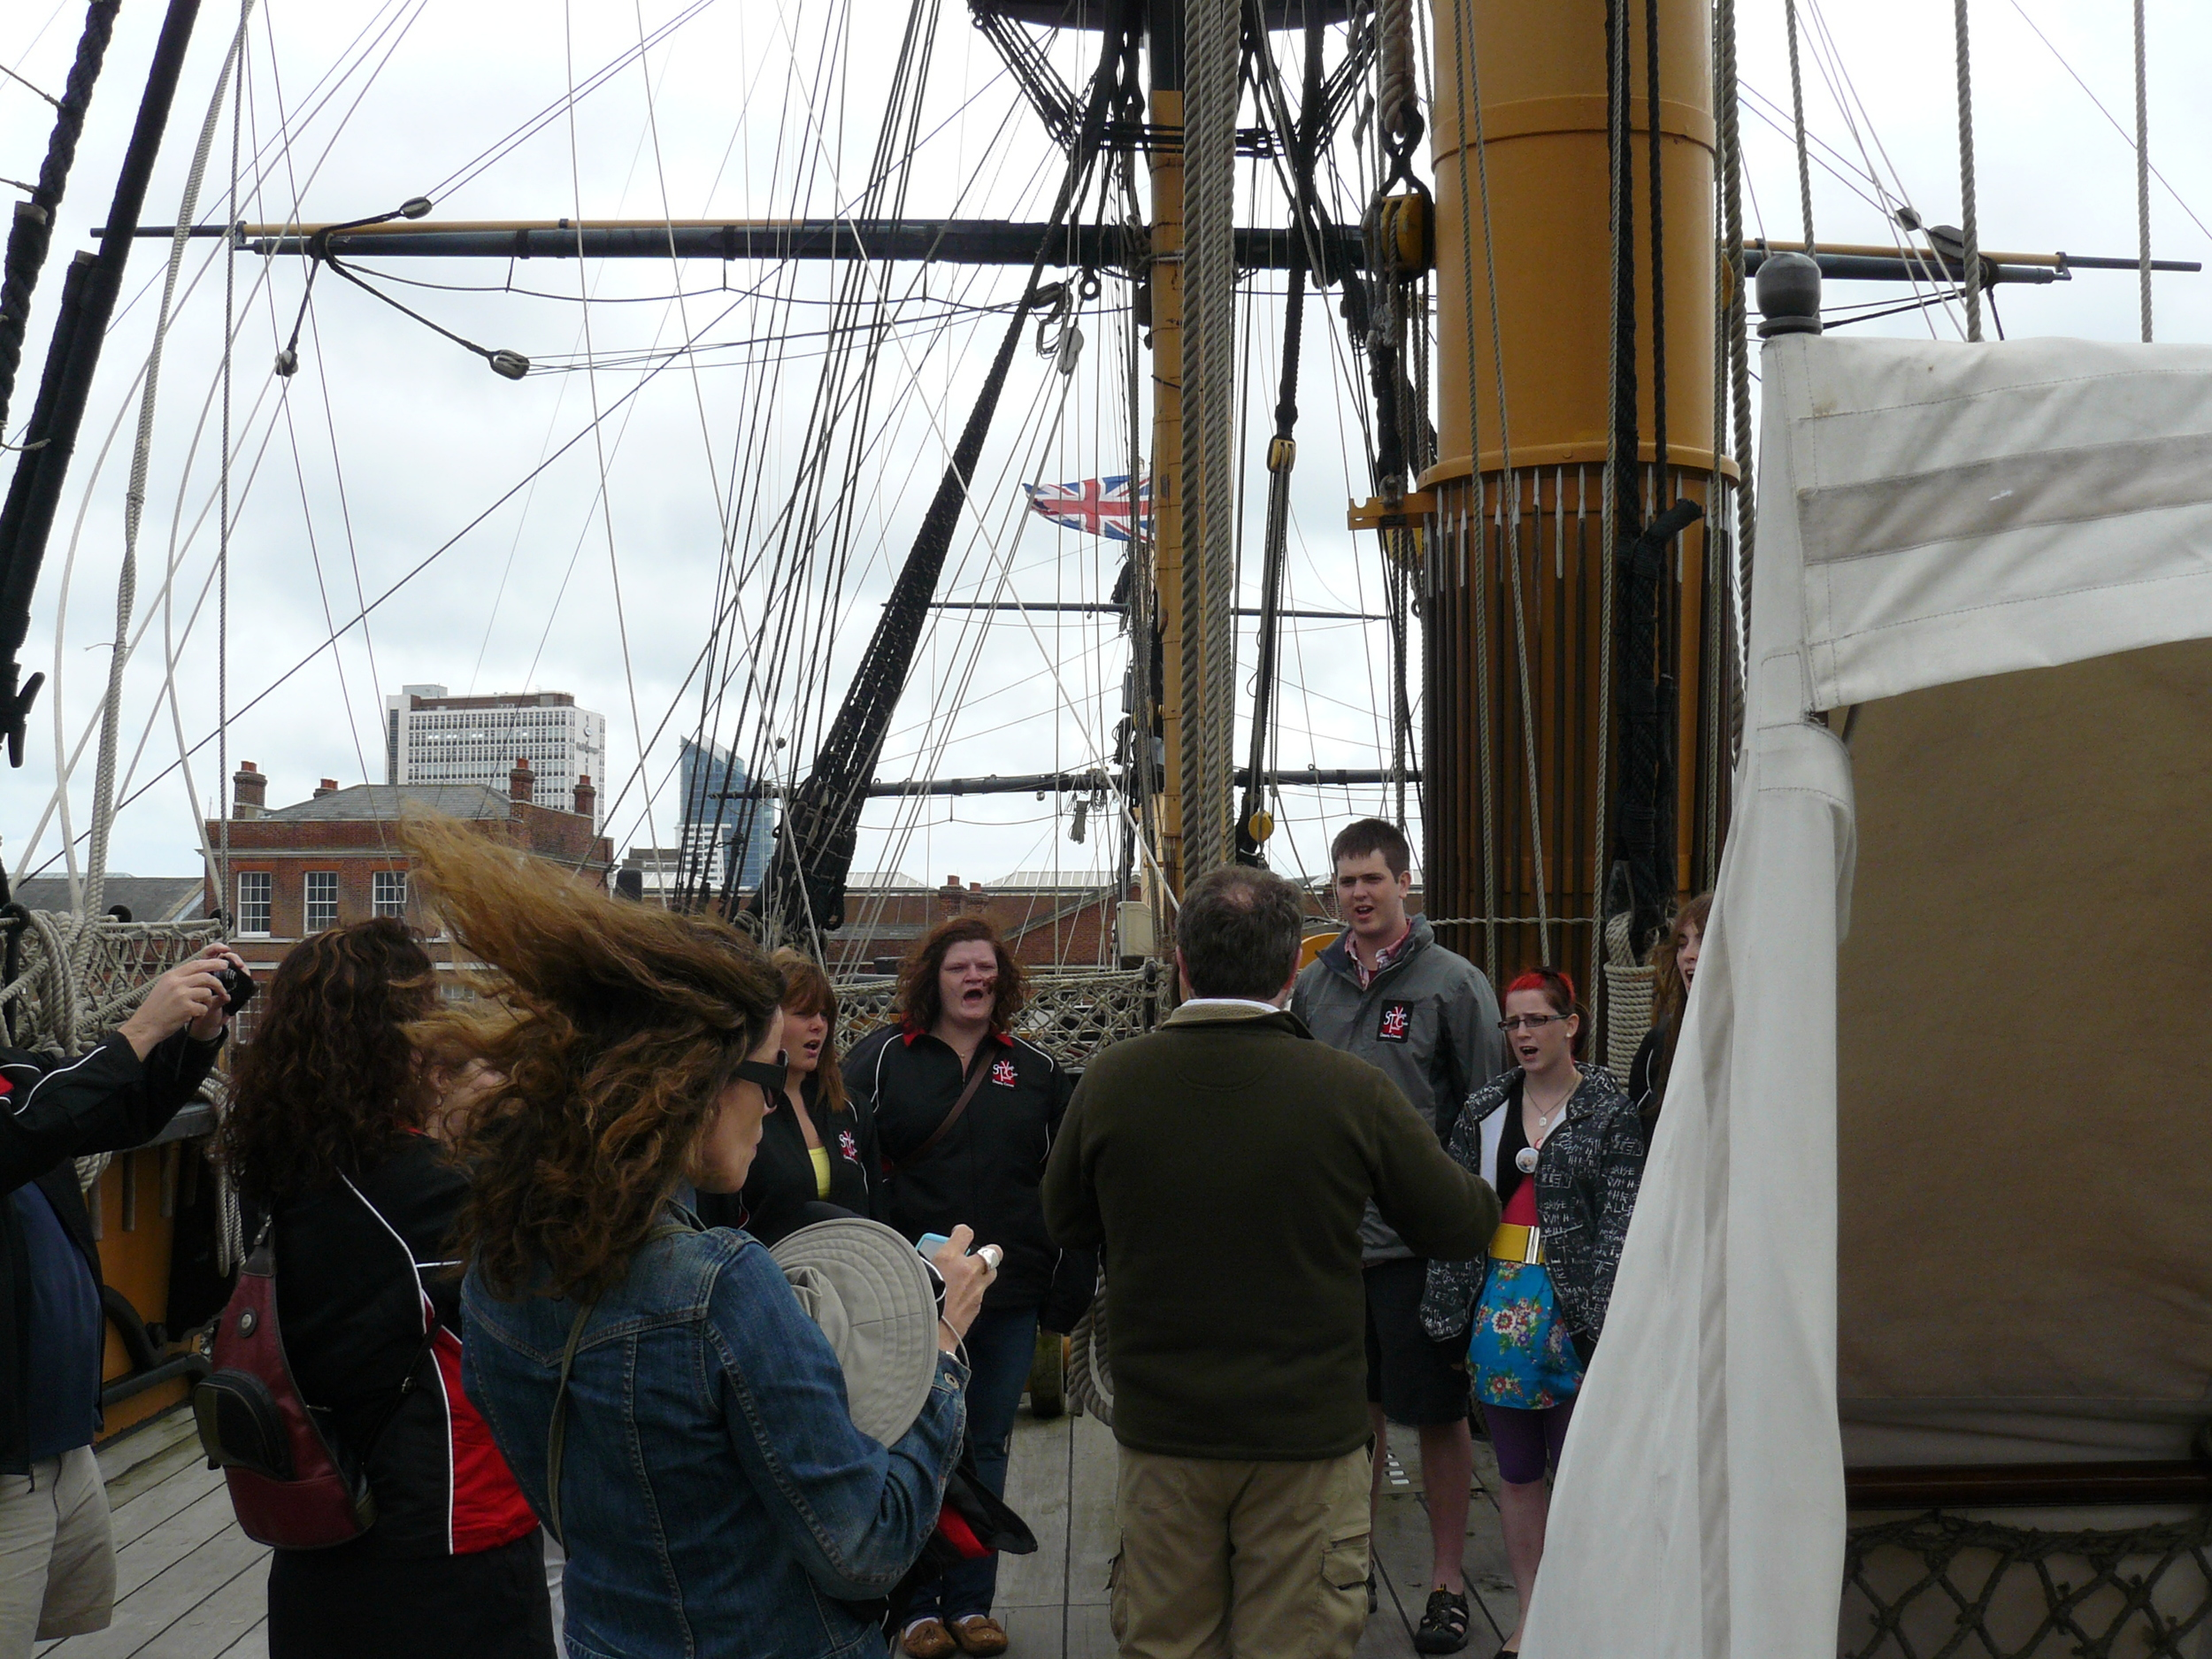 Singing on deck at the spot where Lord Nelson was killed. (it was a very windy day!)